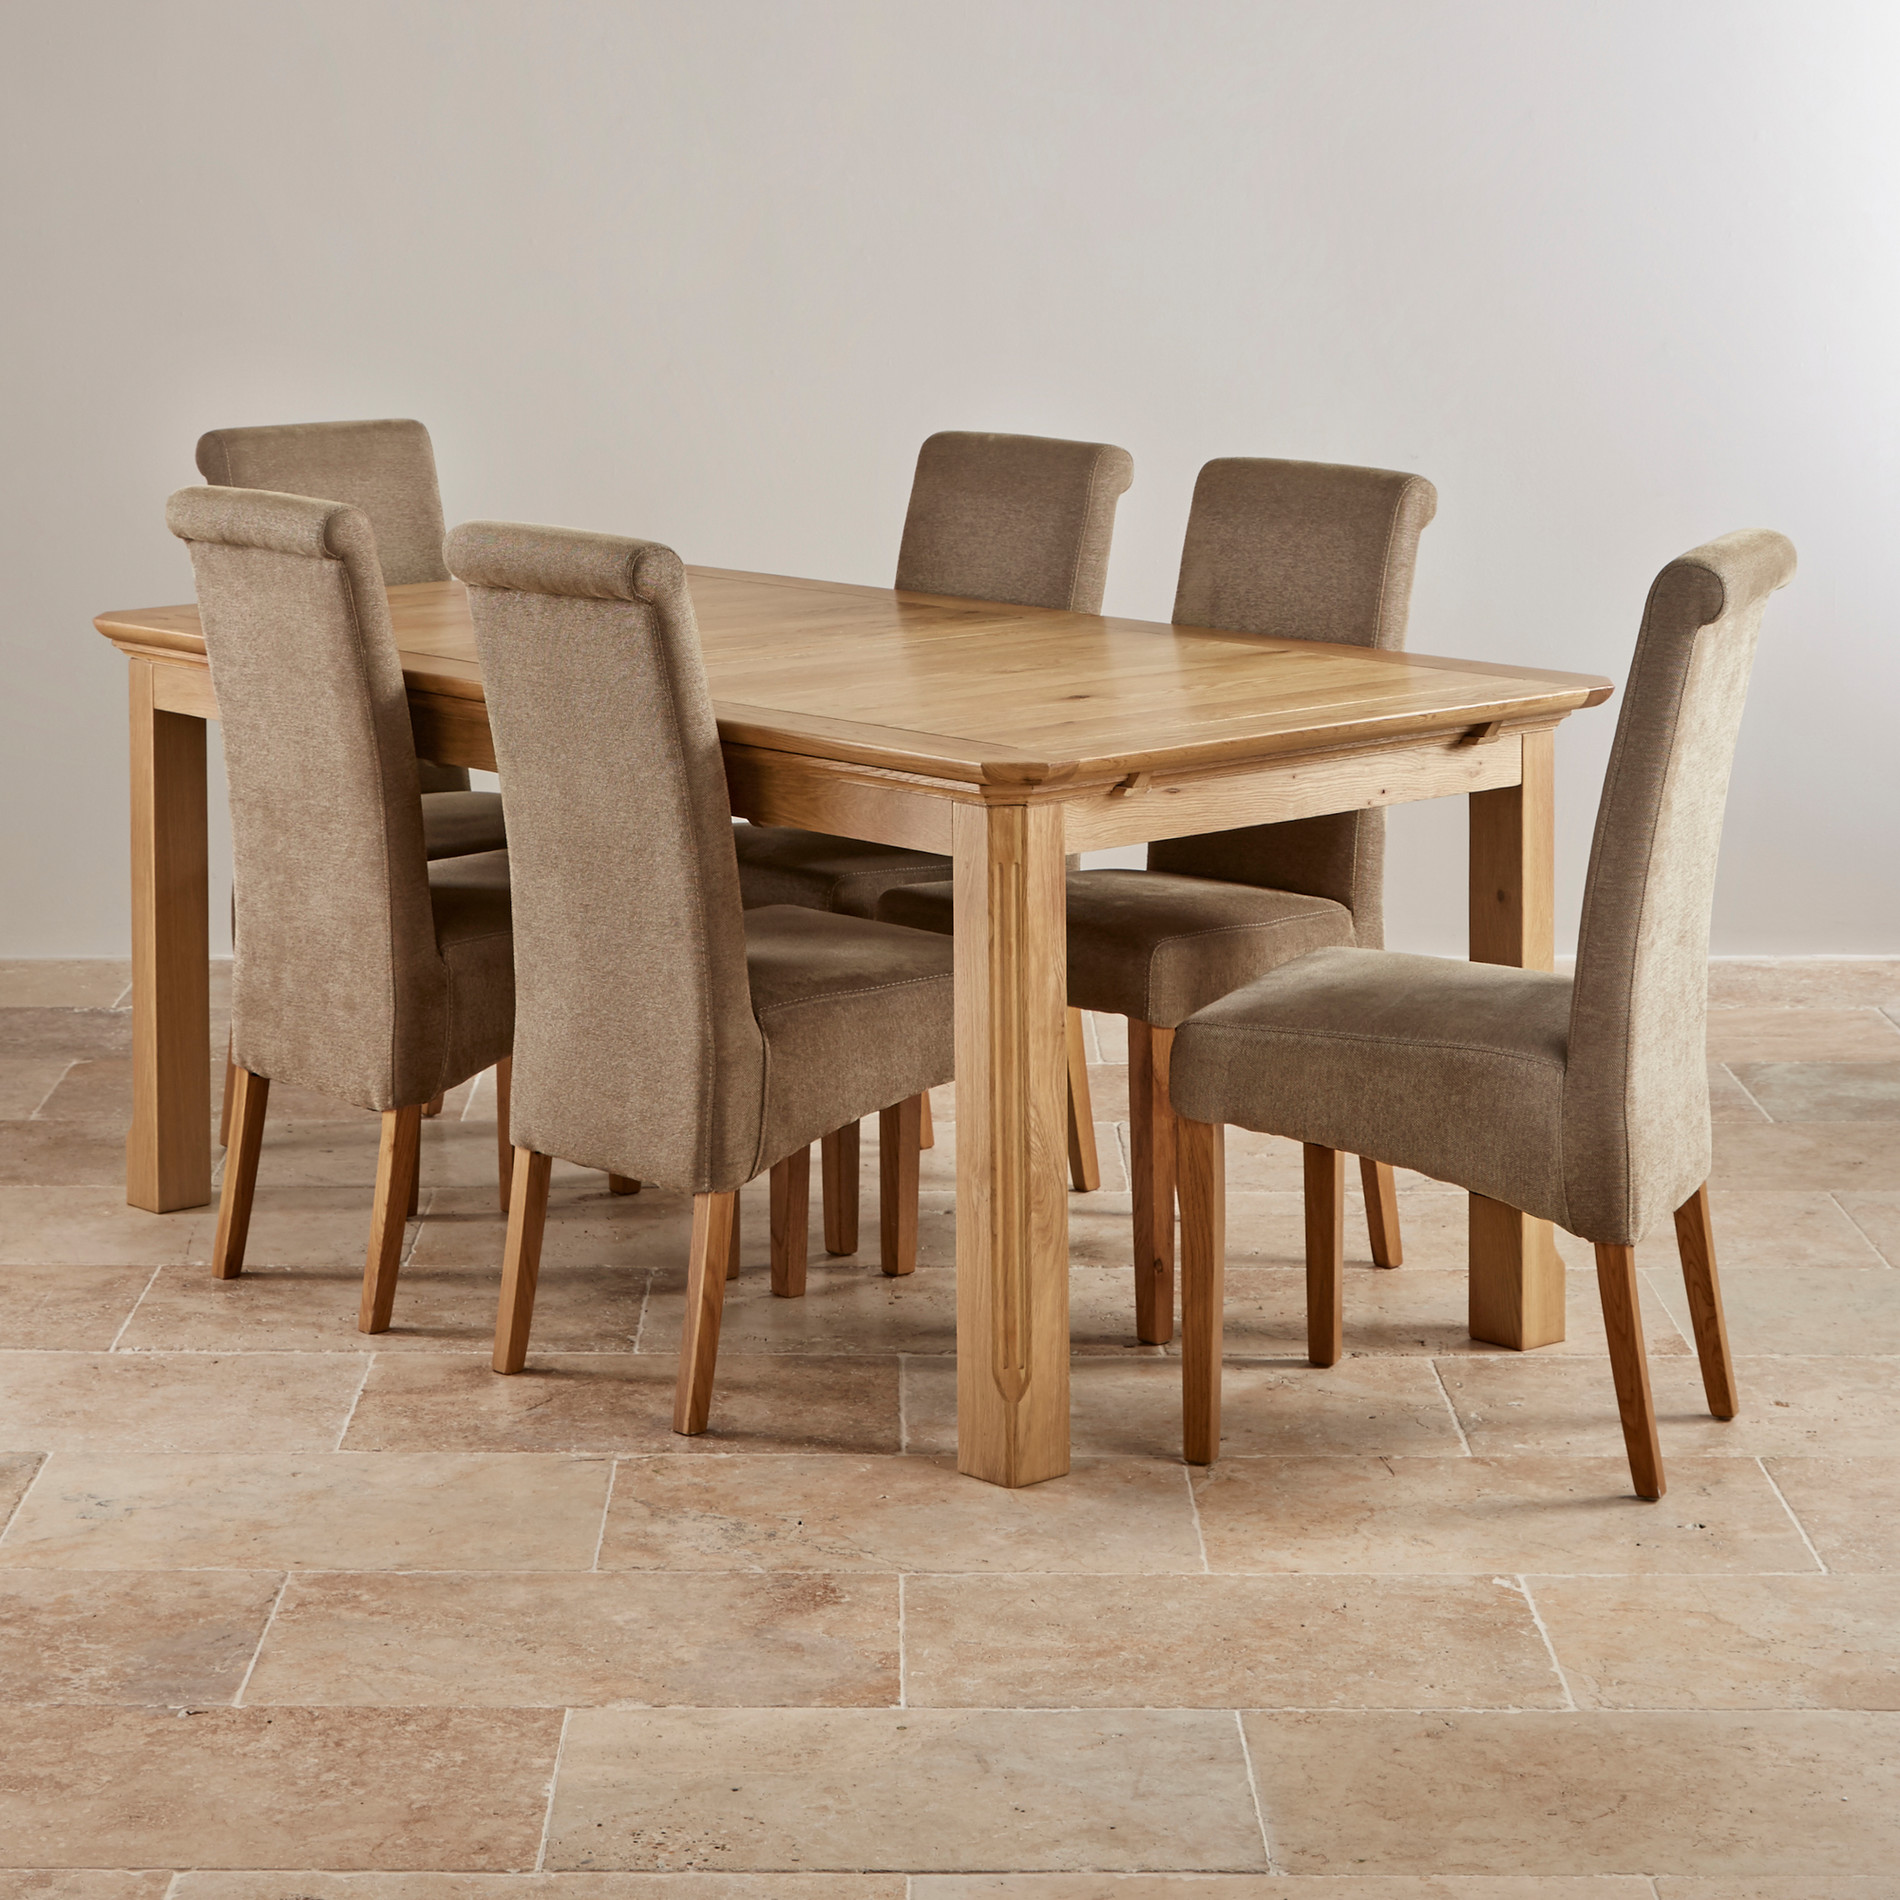 Edinburgh natural solid oak dining set 6ft extending for Dining room table with 6 chairs